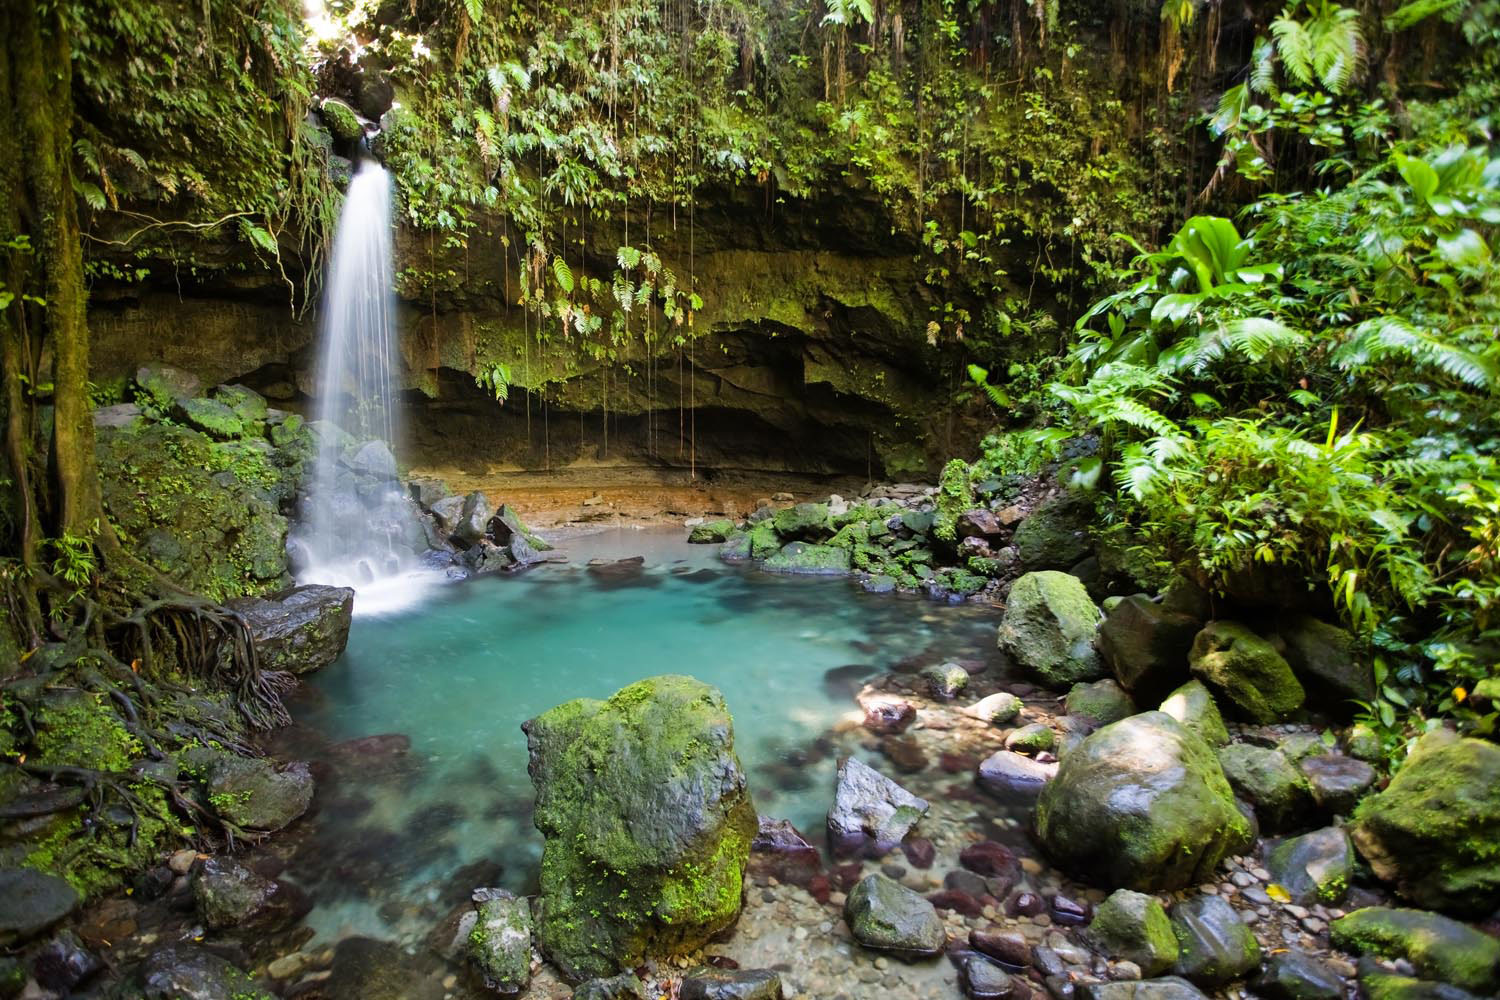 Emerald Pool, one of Dominica's natural gems. Photograph by Paulzizka/iStock Photo